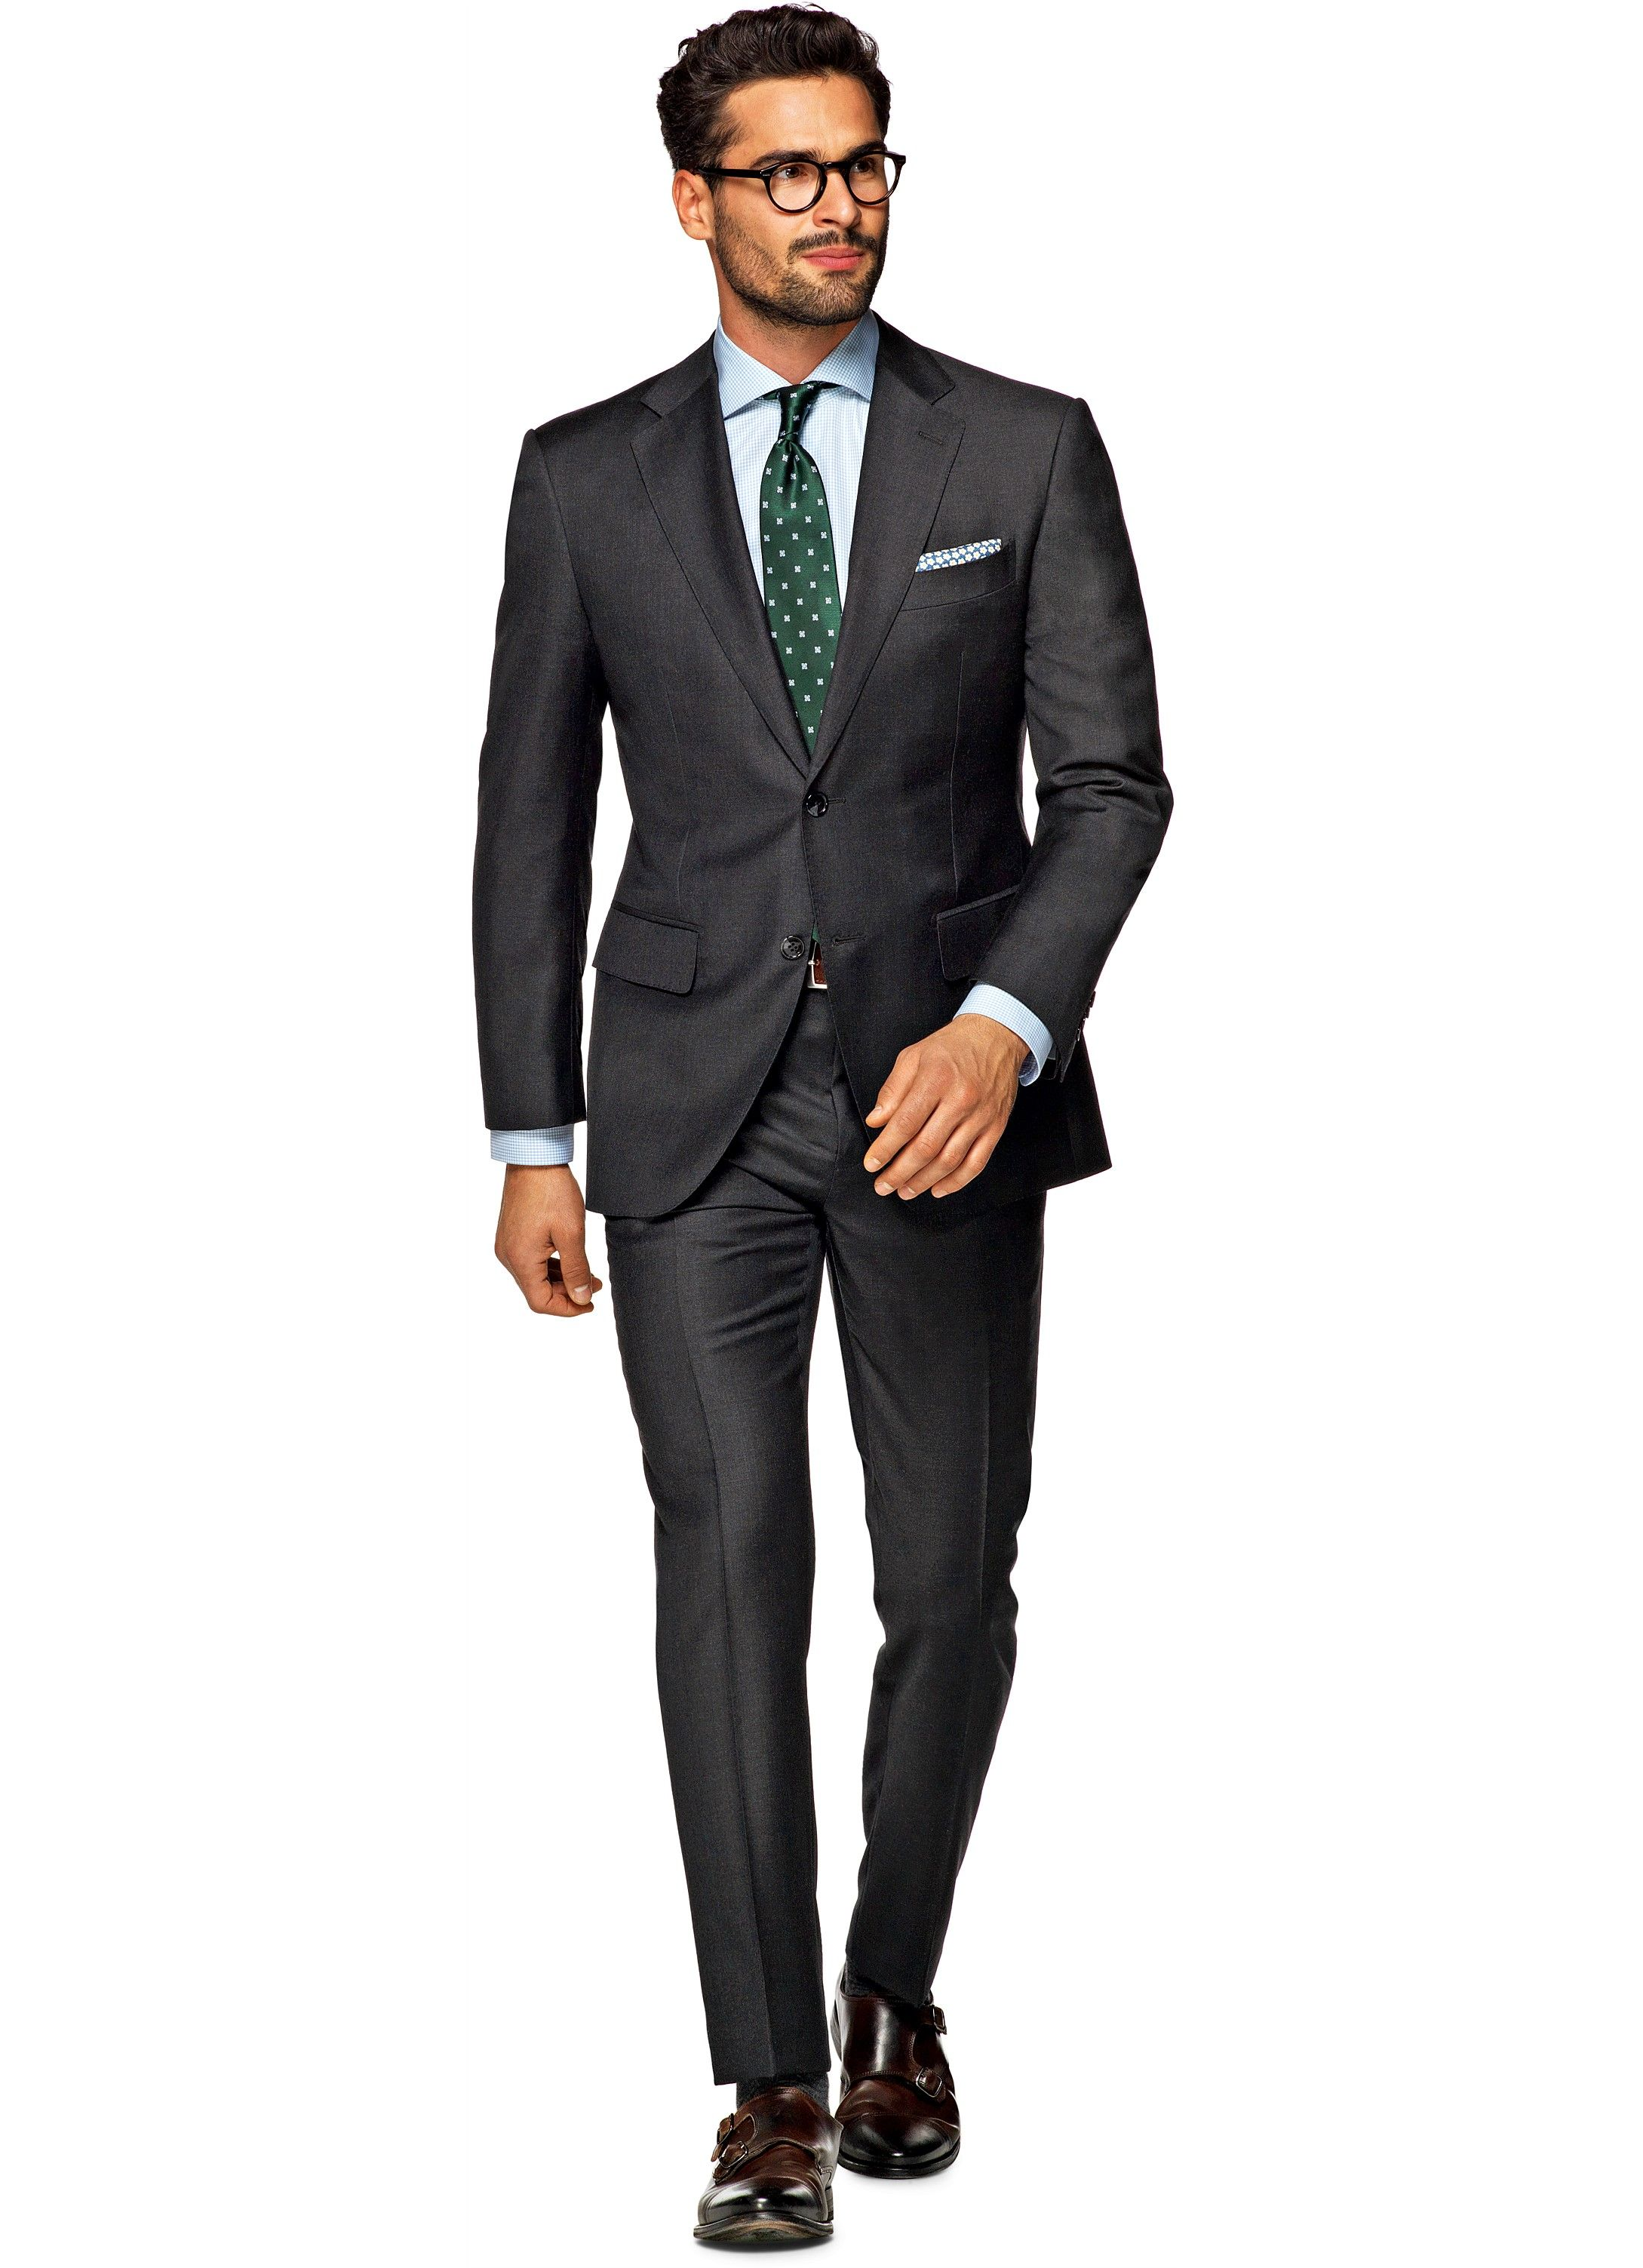 Suit dark grey plain napoli p2525i suitsupply online for Charcoal suit shirt tie combinations